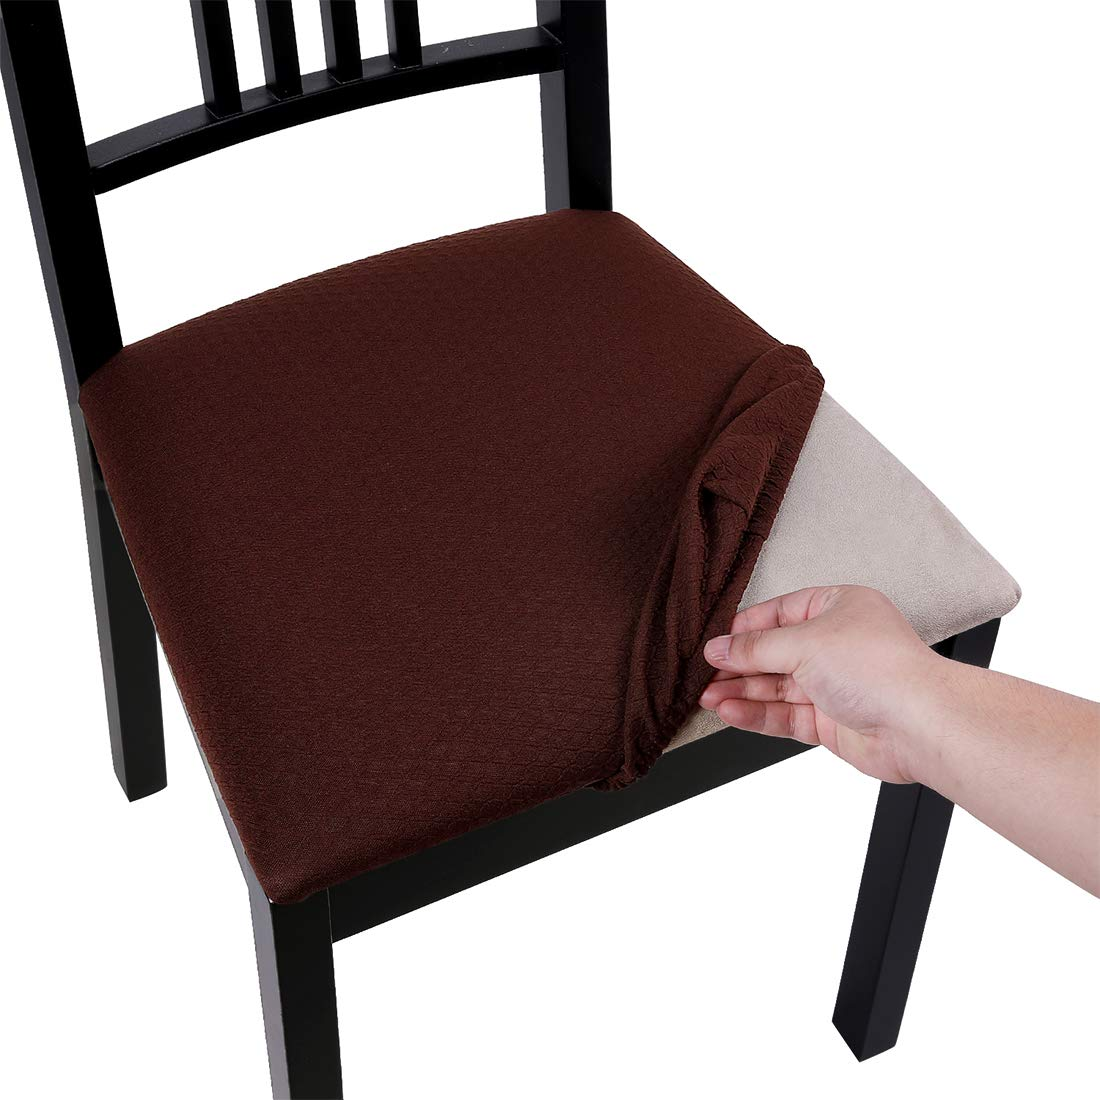 Homaxy Premium Jacquard Dining Room Chair Seat Covers, Washable Spandex Stretch Dinning Chair Upholstered Cushion Cover, Waffle Slipcover Protectors with Ties - Set of 4, Chocolate